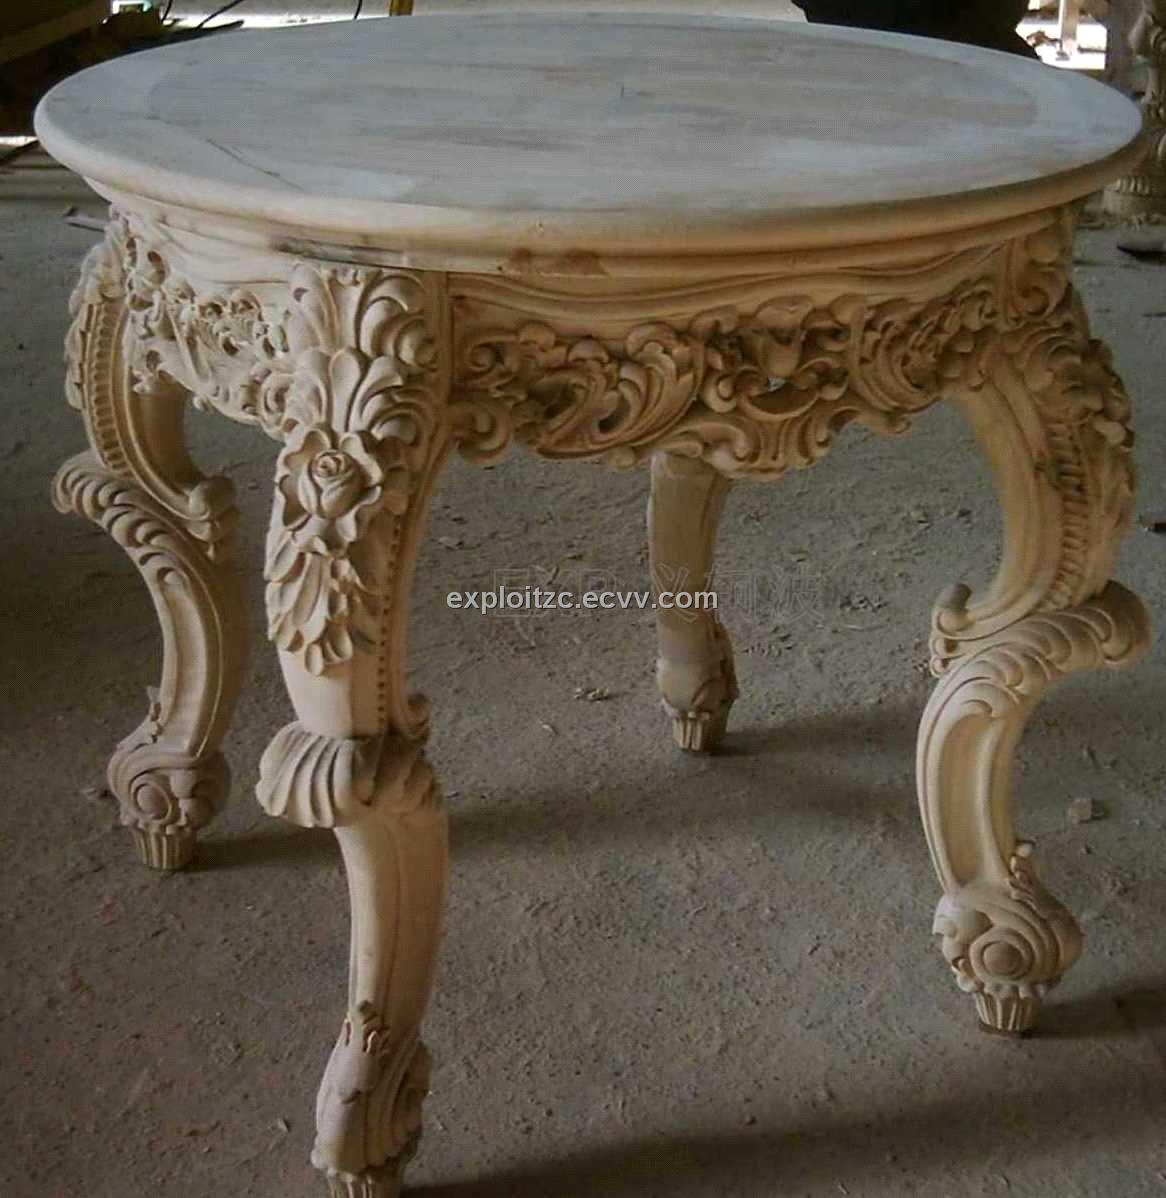 French Style Coffee Table Purchasing Souring Agent ECVVcom - White french style coffee table